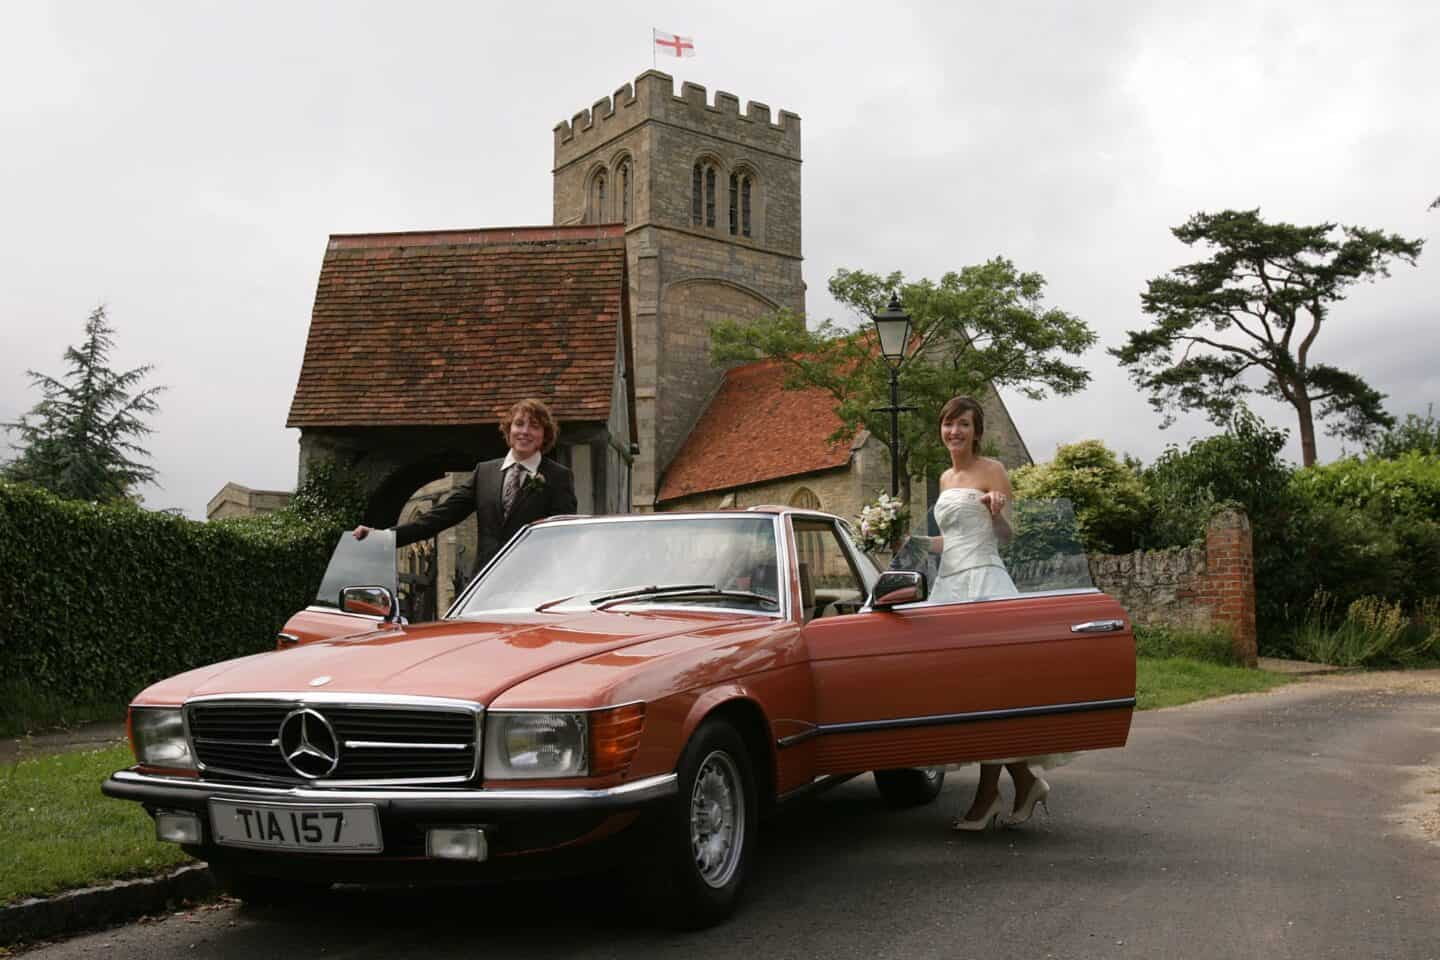 After the wedding, with a classic Mercedes